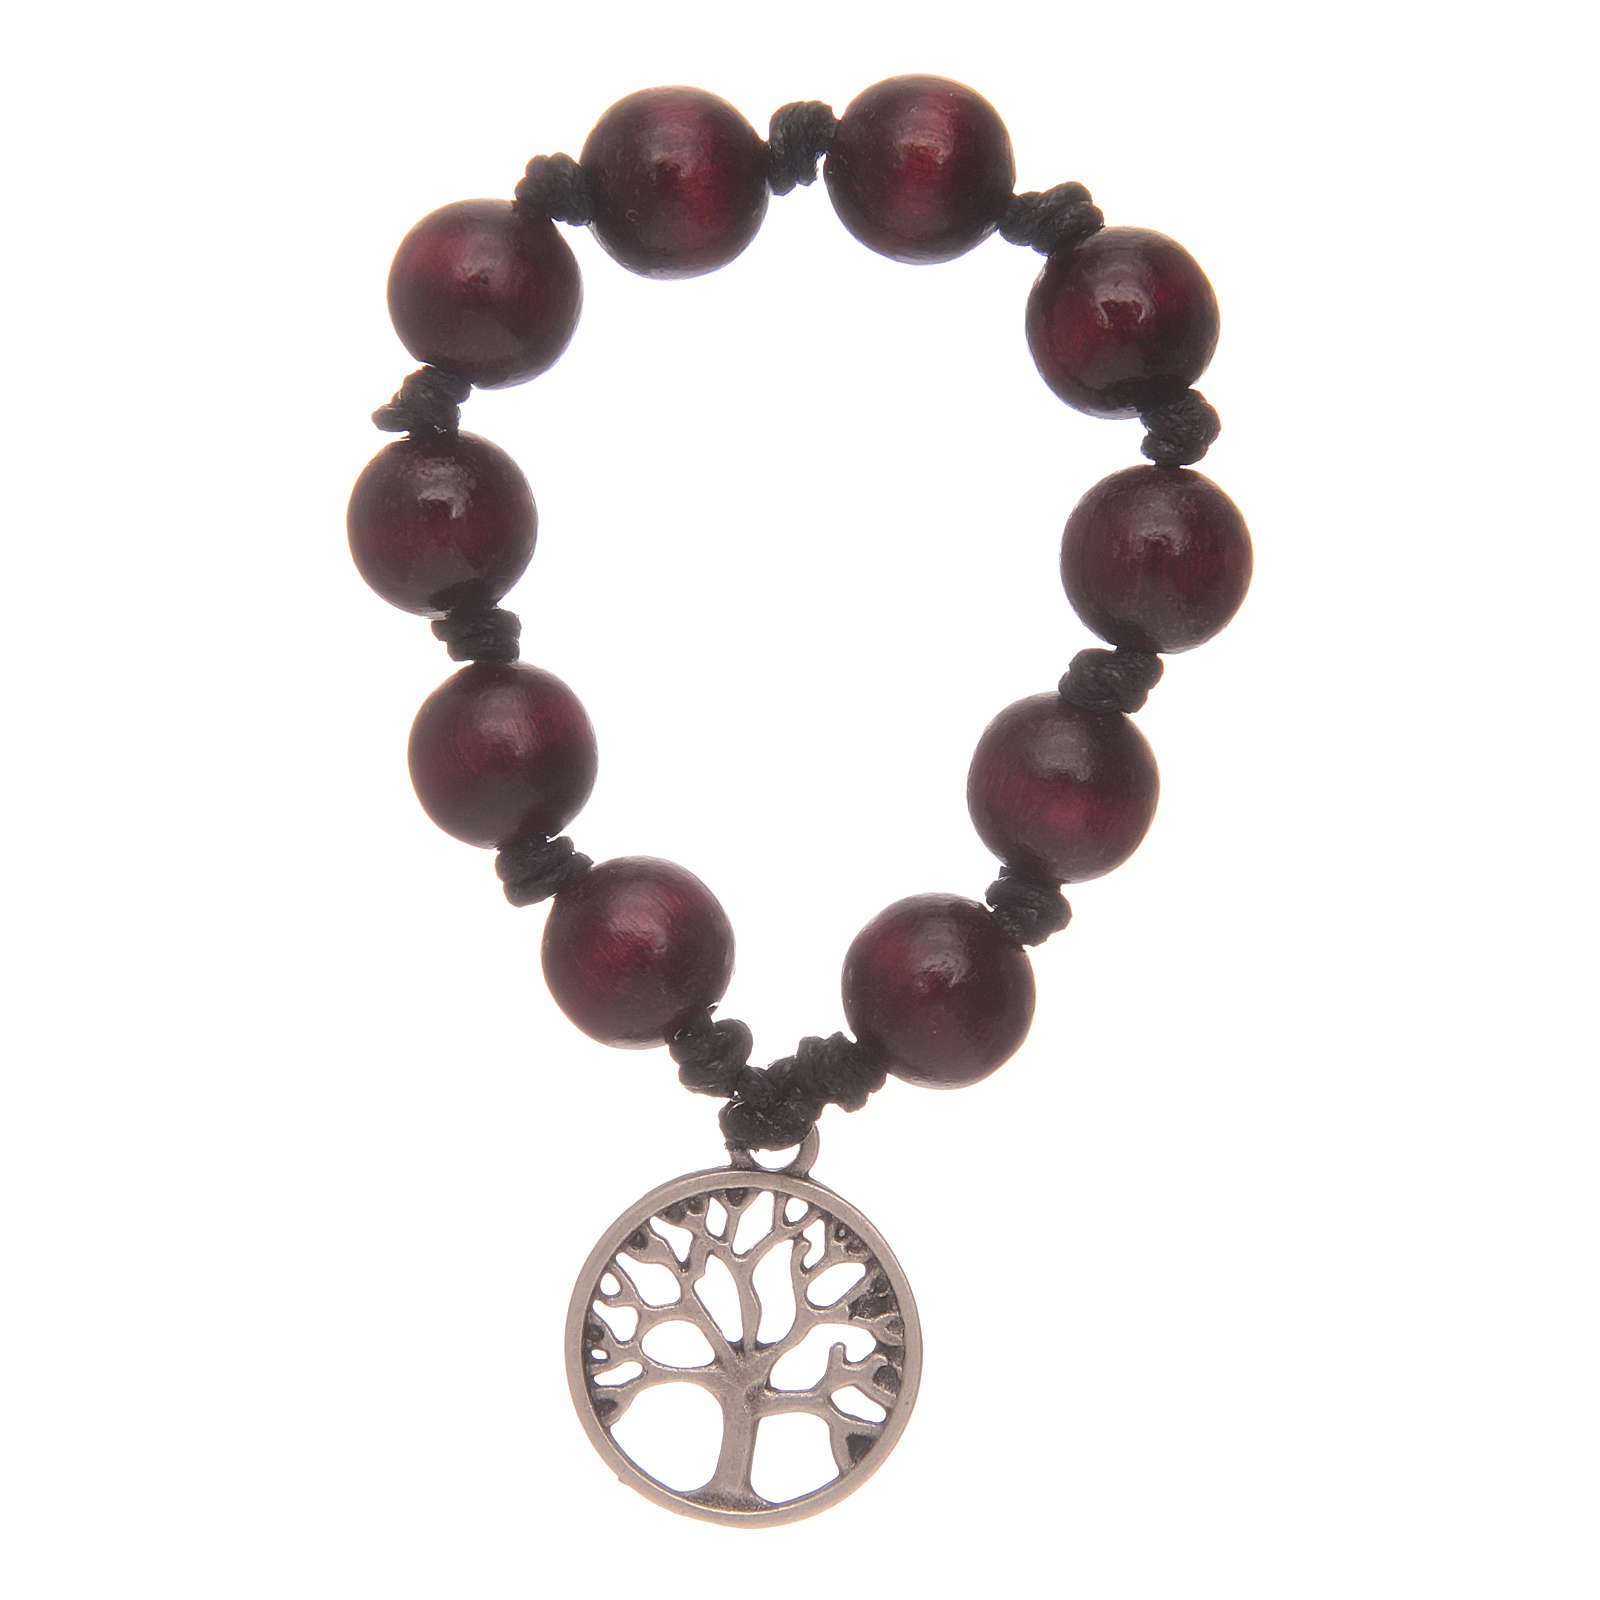 Single decade rosary with rosewood grains and tree of life 4